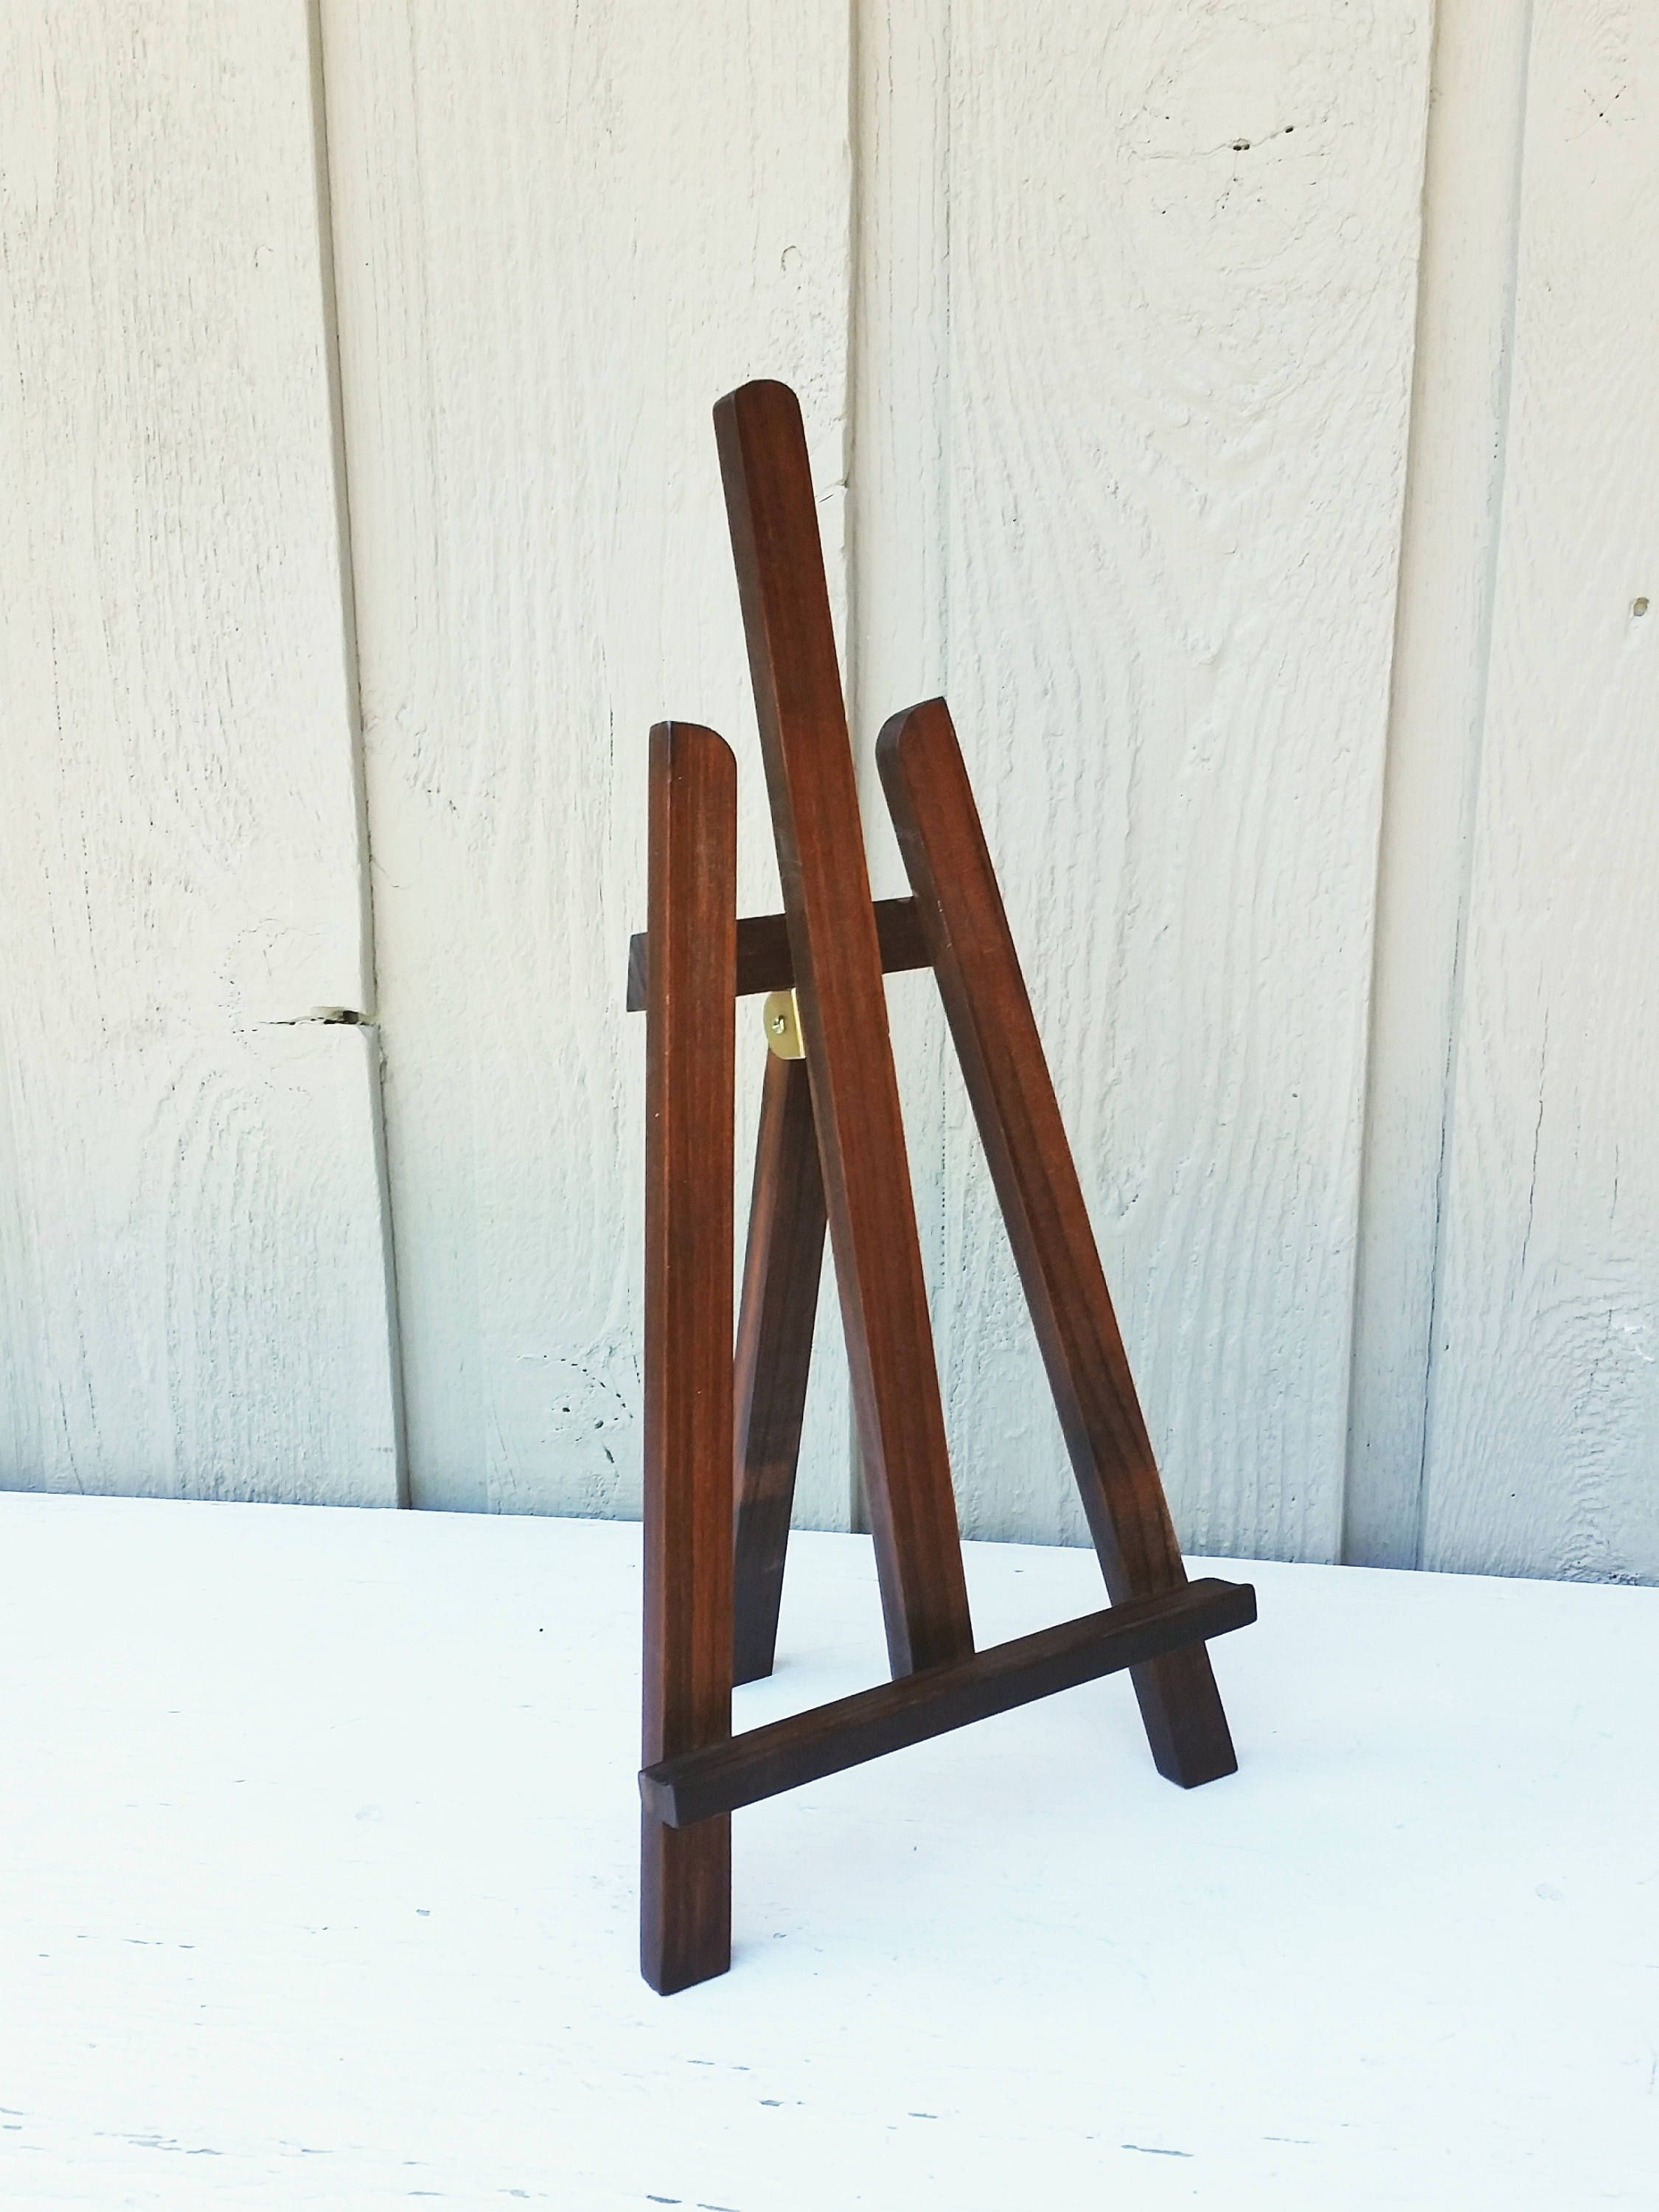 Large Brown Tabletop Easel 15 5 Inch Painted Wood Easel Holds Up To 16 X 20 Artwork And Display Signs By Naturesw Tabletop Easel Wood Easel Vintage Home Decor